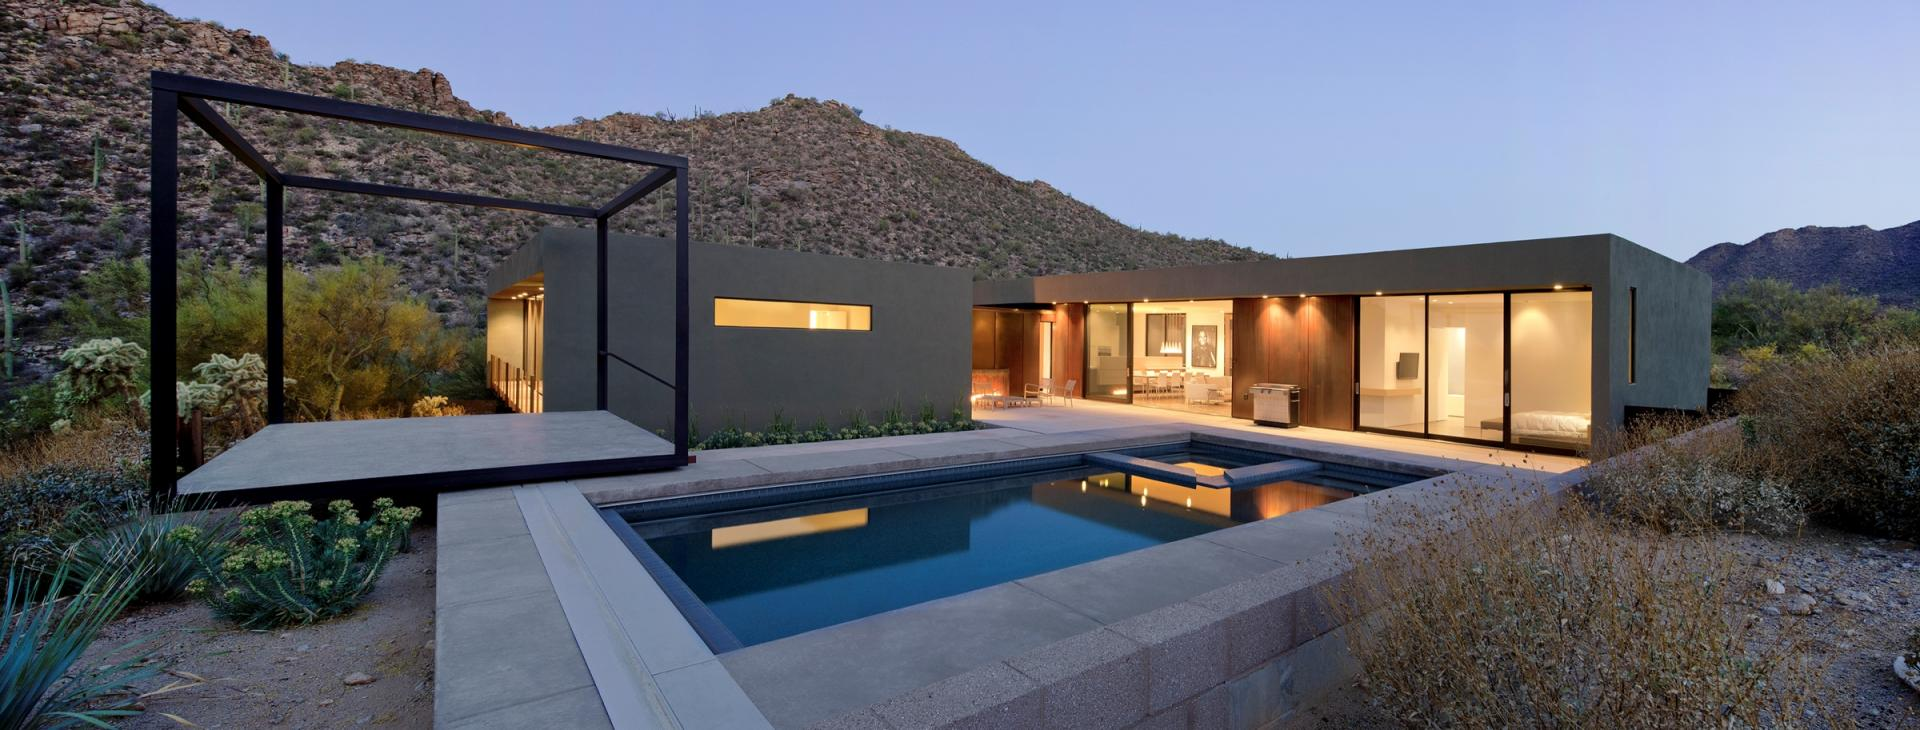 Desert House with Awesome Viewing